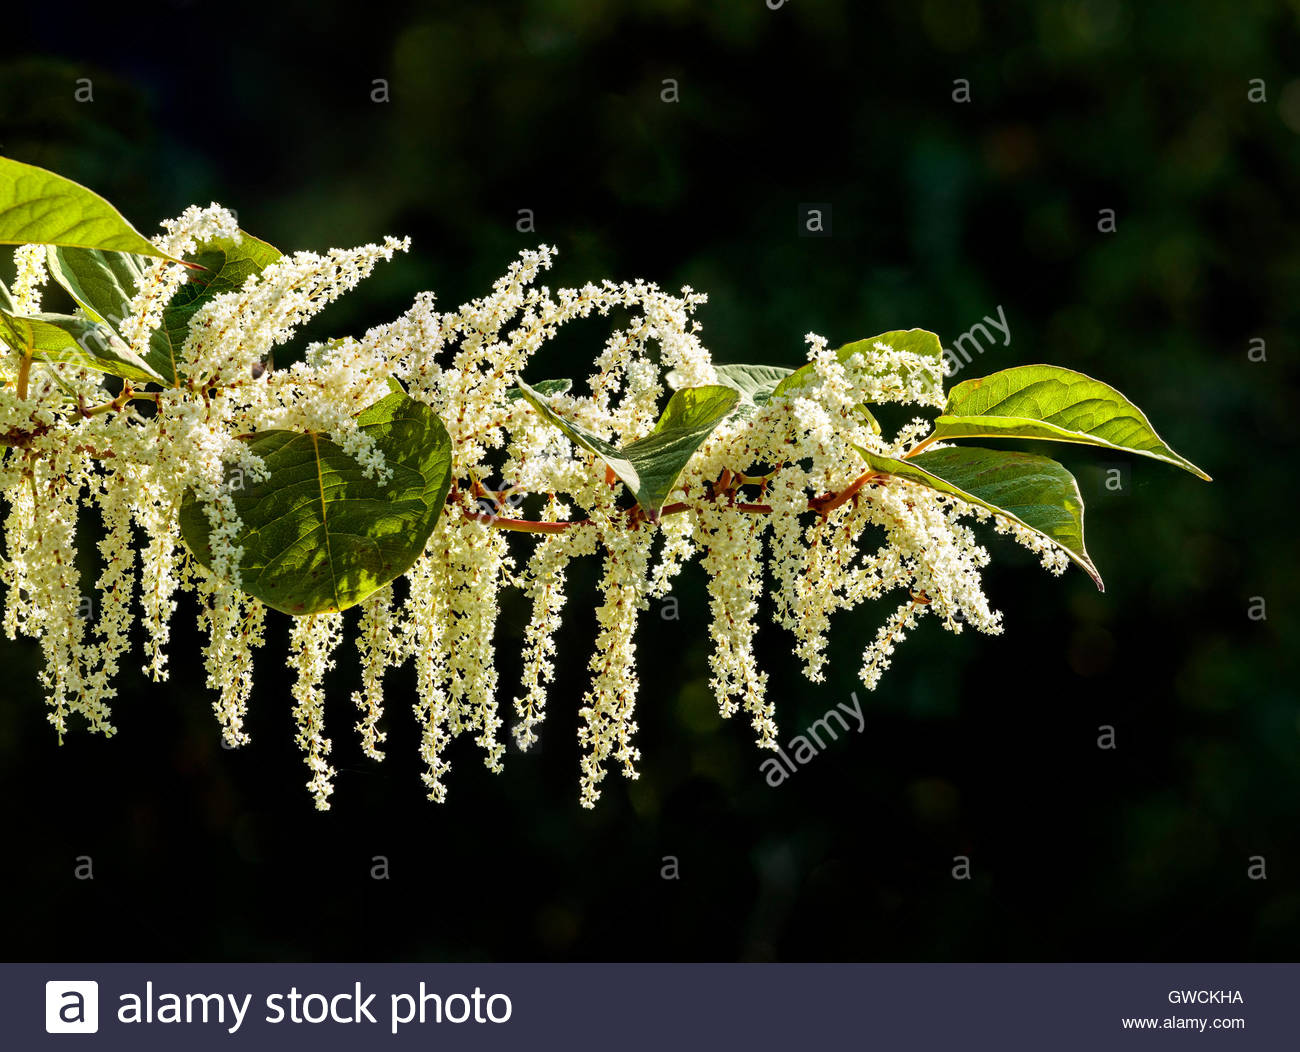 Fallopia japonica, Reynoutria japonica, Asian knotweed, Japanese knotweed, invasive, plant, Rouge National Urban - Stock Image